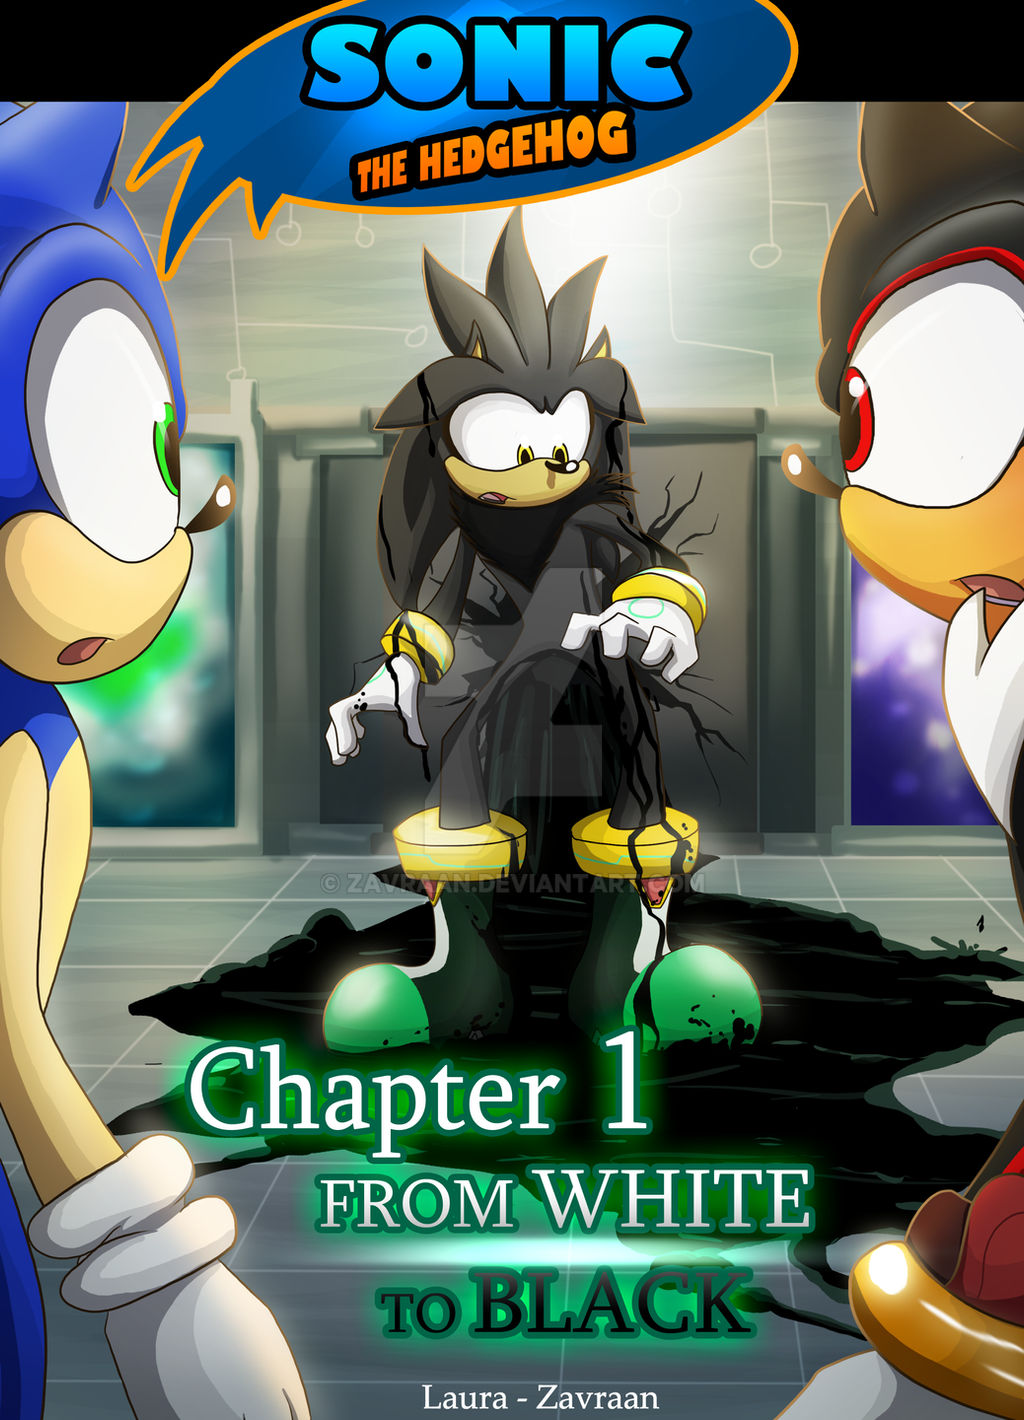 From White To Black Chapter 1 By Zavraan On Deviantart